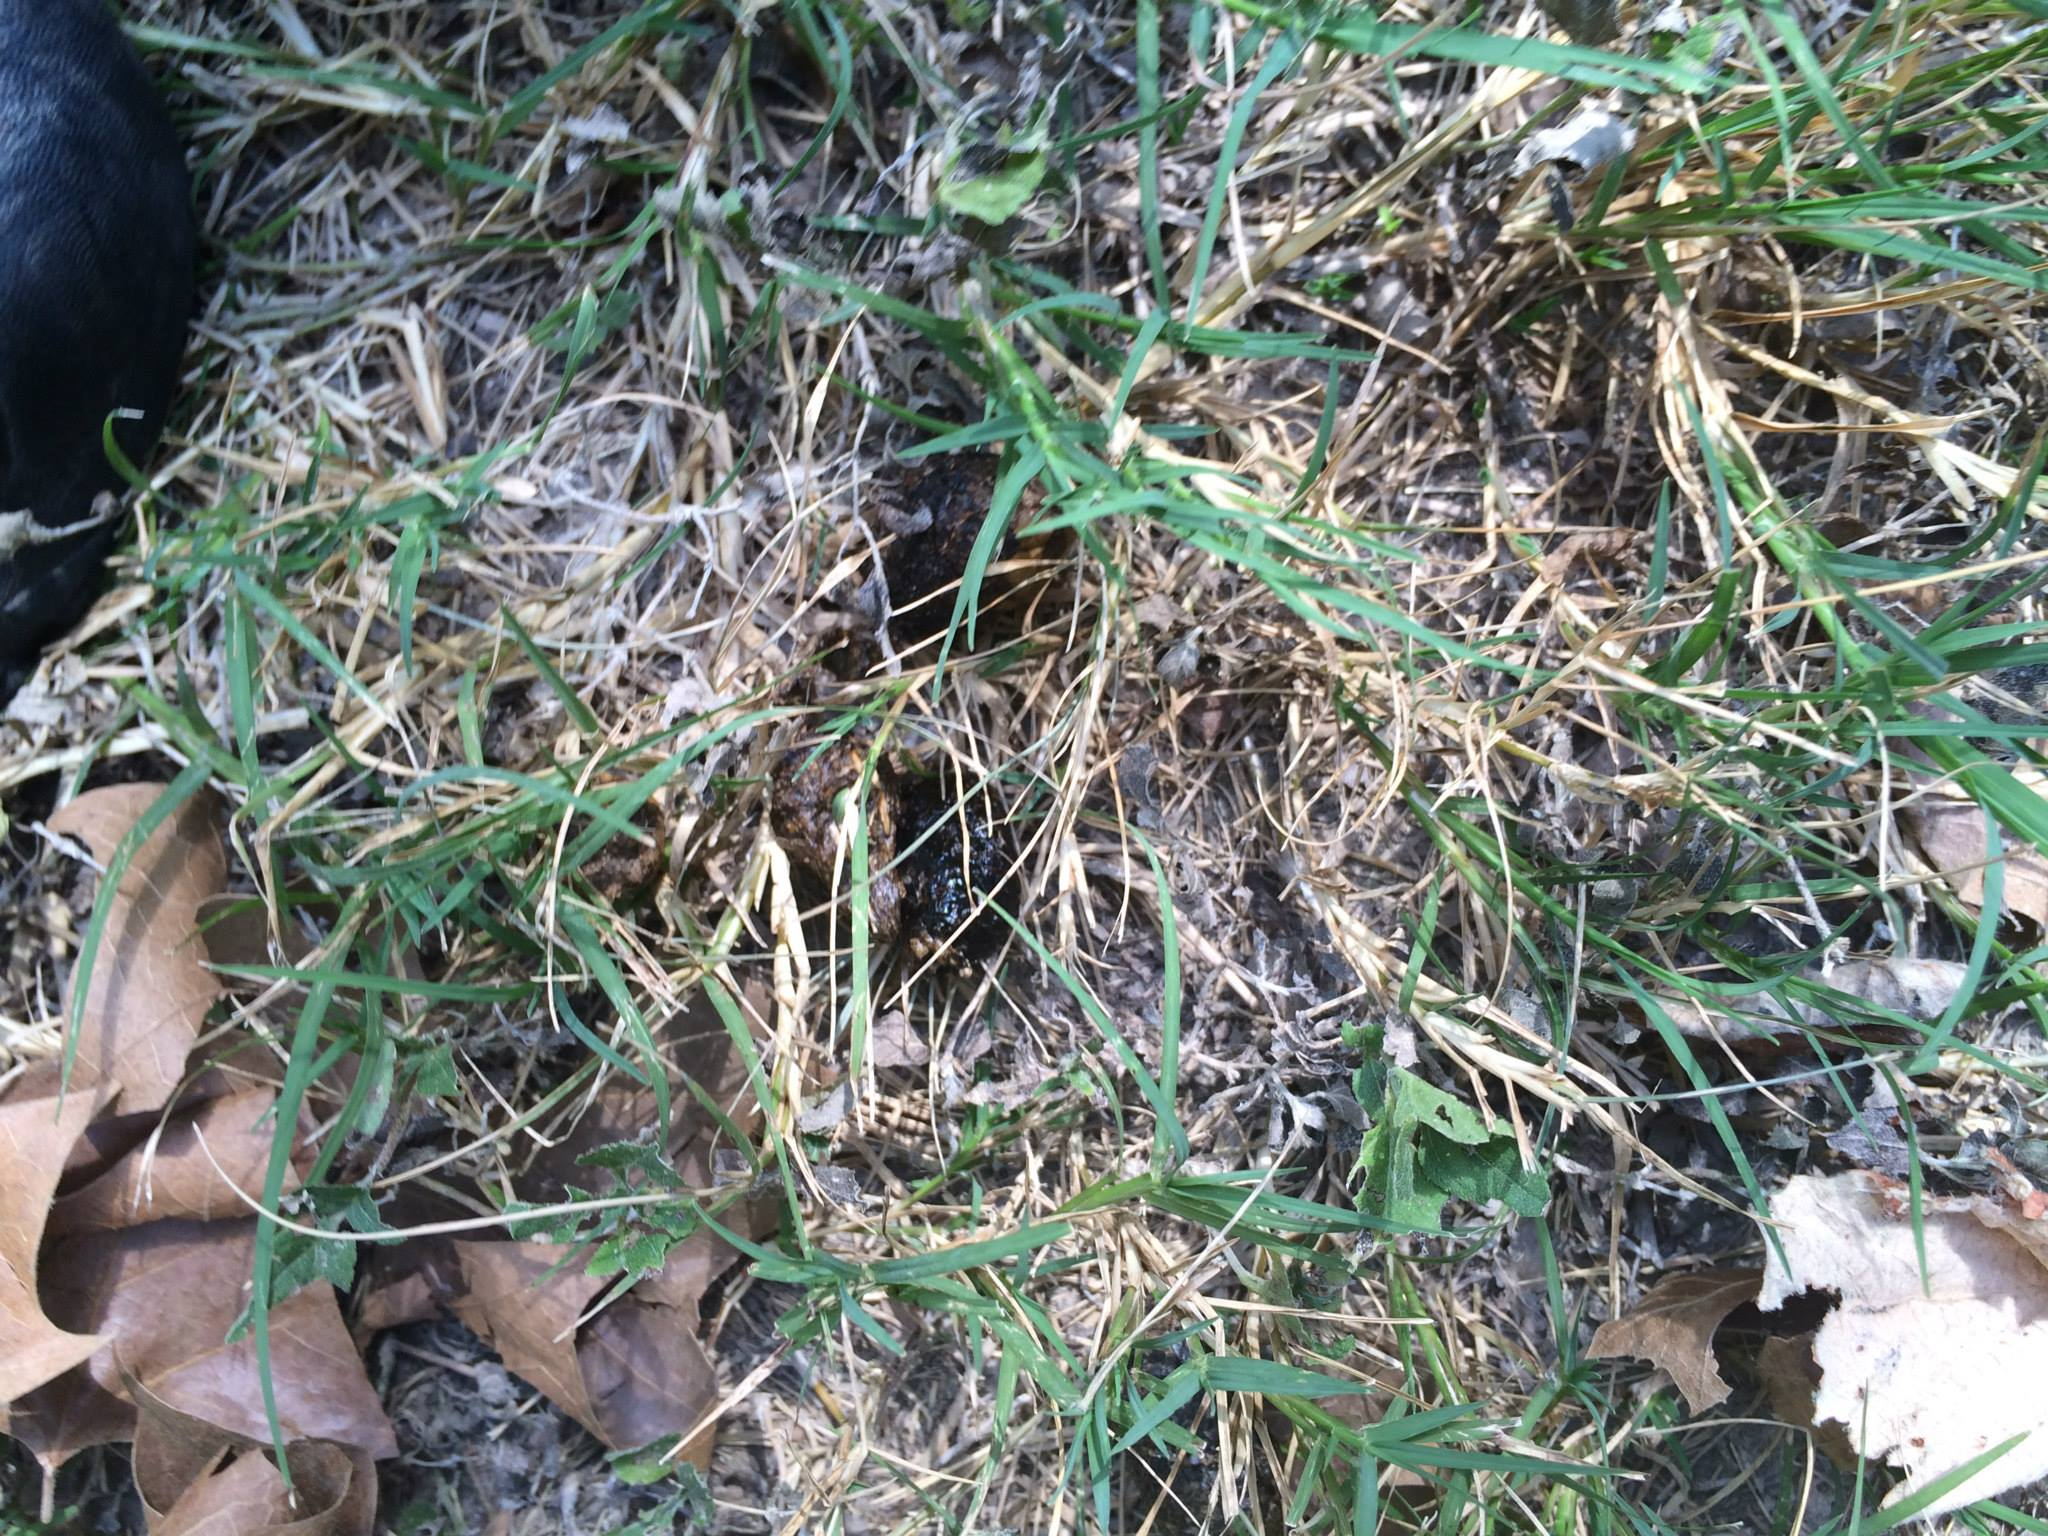 A sneaky raw poo - If you can spot it through this grass, this raw poo is an A+ on color (nice and dark but still brown, not black), size, density and don't smell. These poos break down into white dust in a few days. Raw-fed dogs are easy to distinguish by their poo.